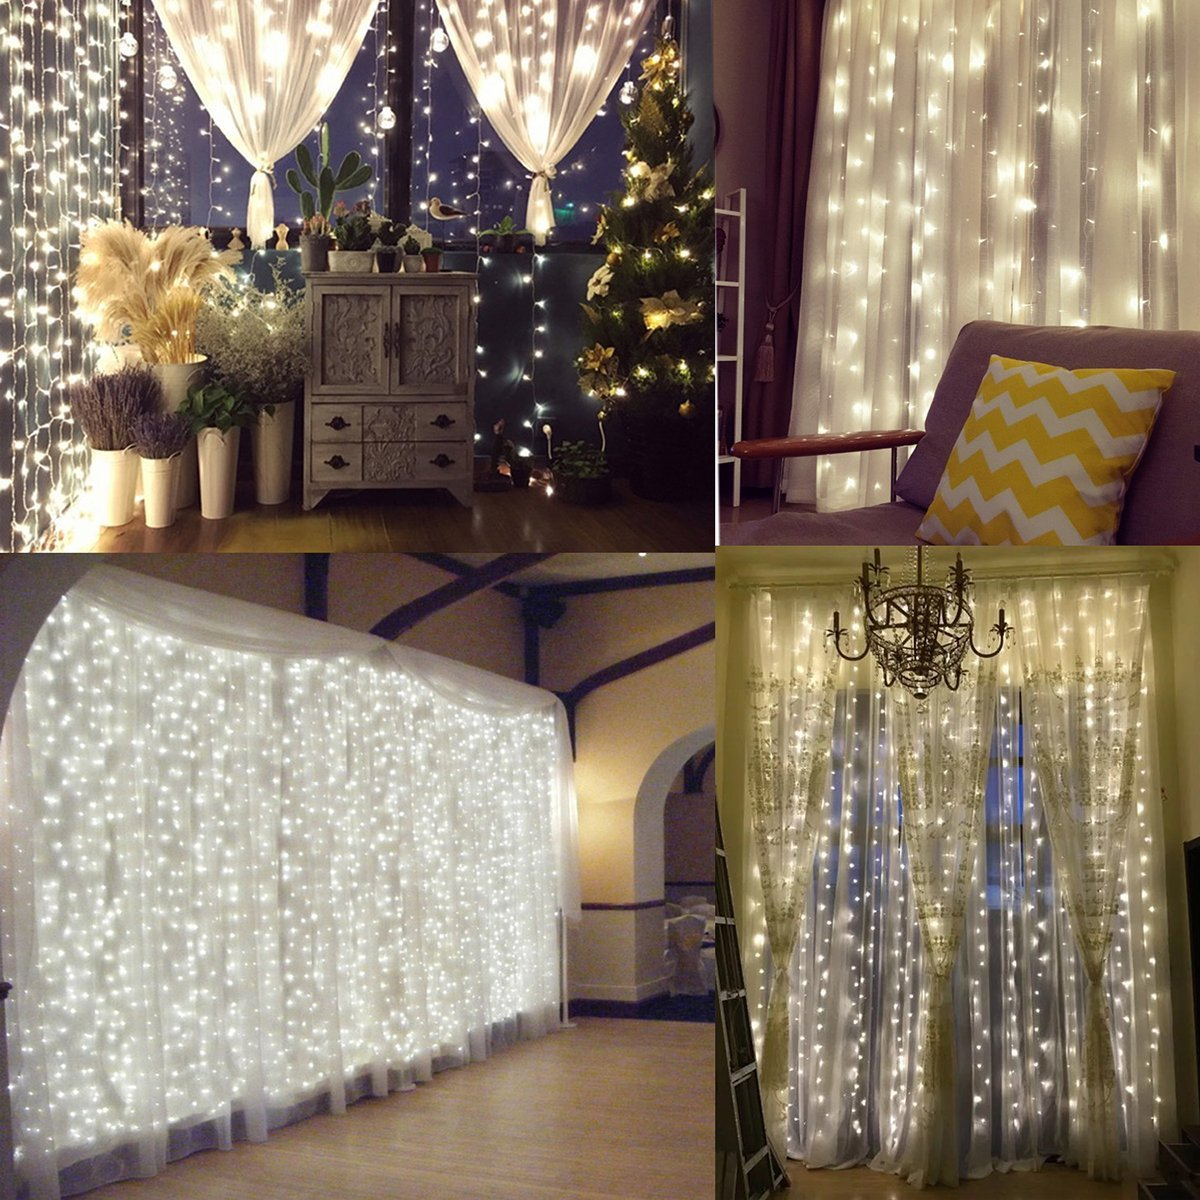 How To Make Curtain Lights Naisidier Window Curtain String Lights Starry Fairy Icicle Lights